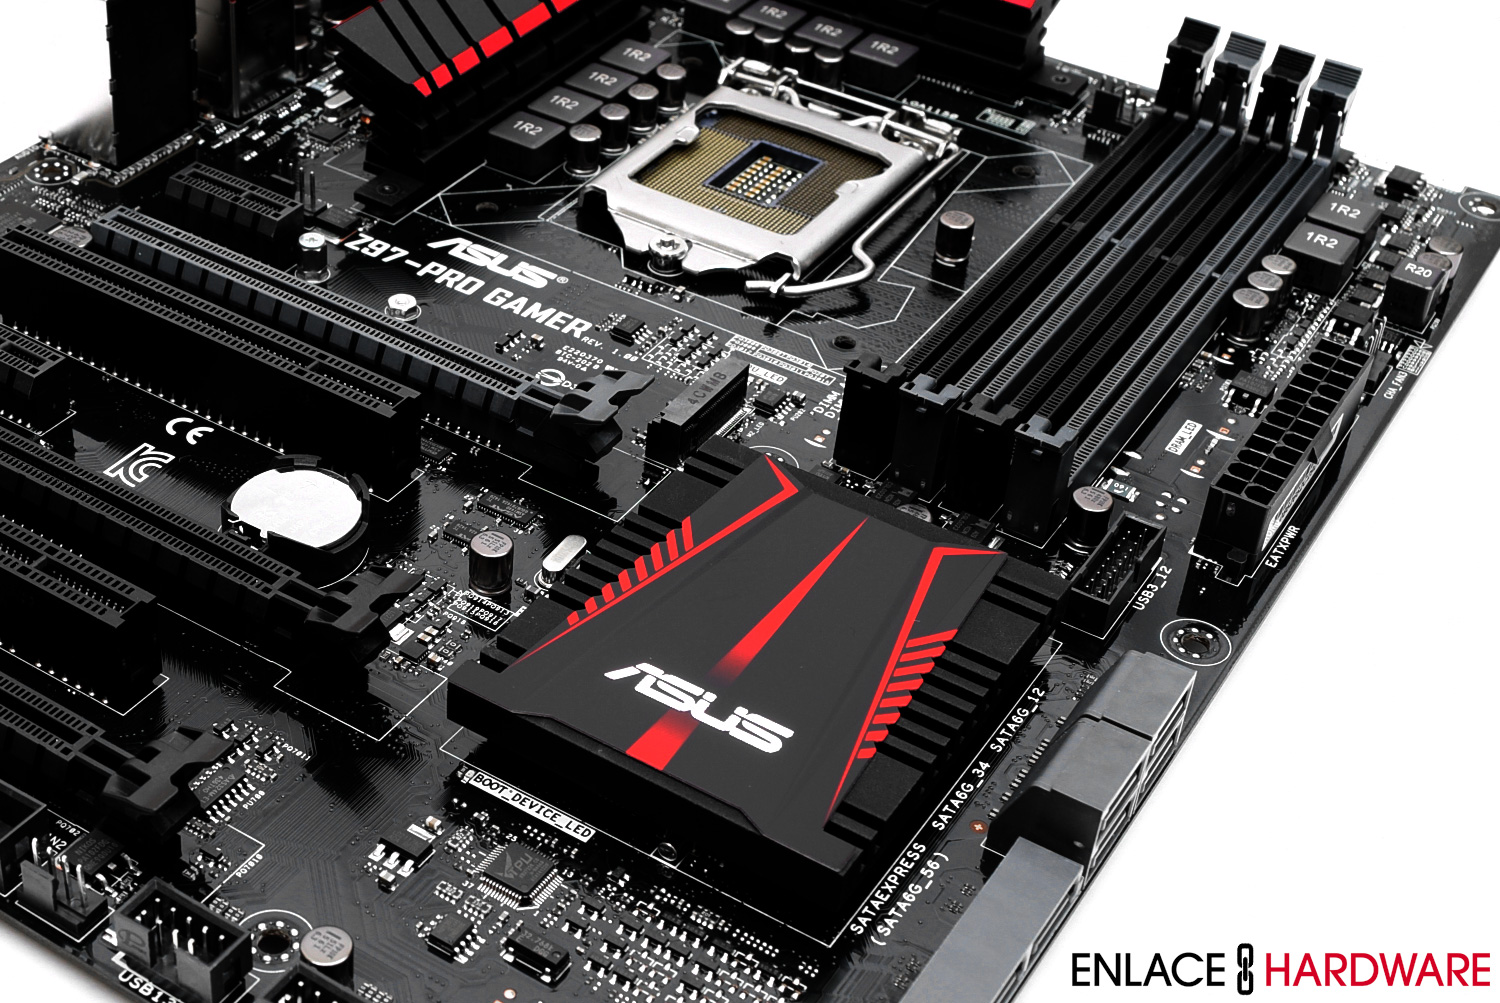 ASUS-Z97-Pro-Gamer-Review-6